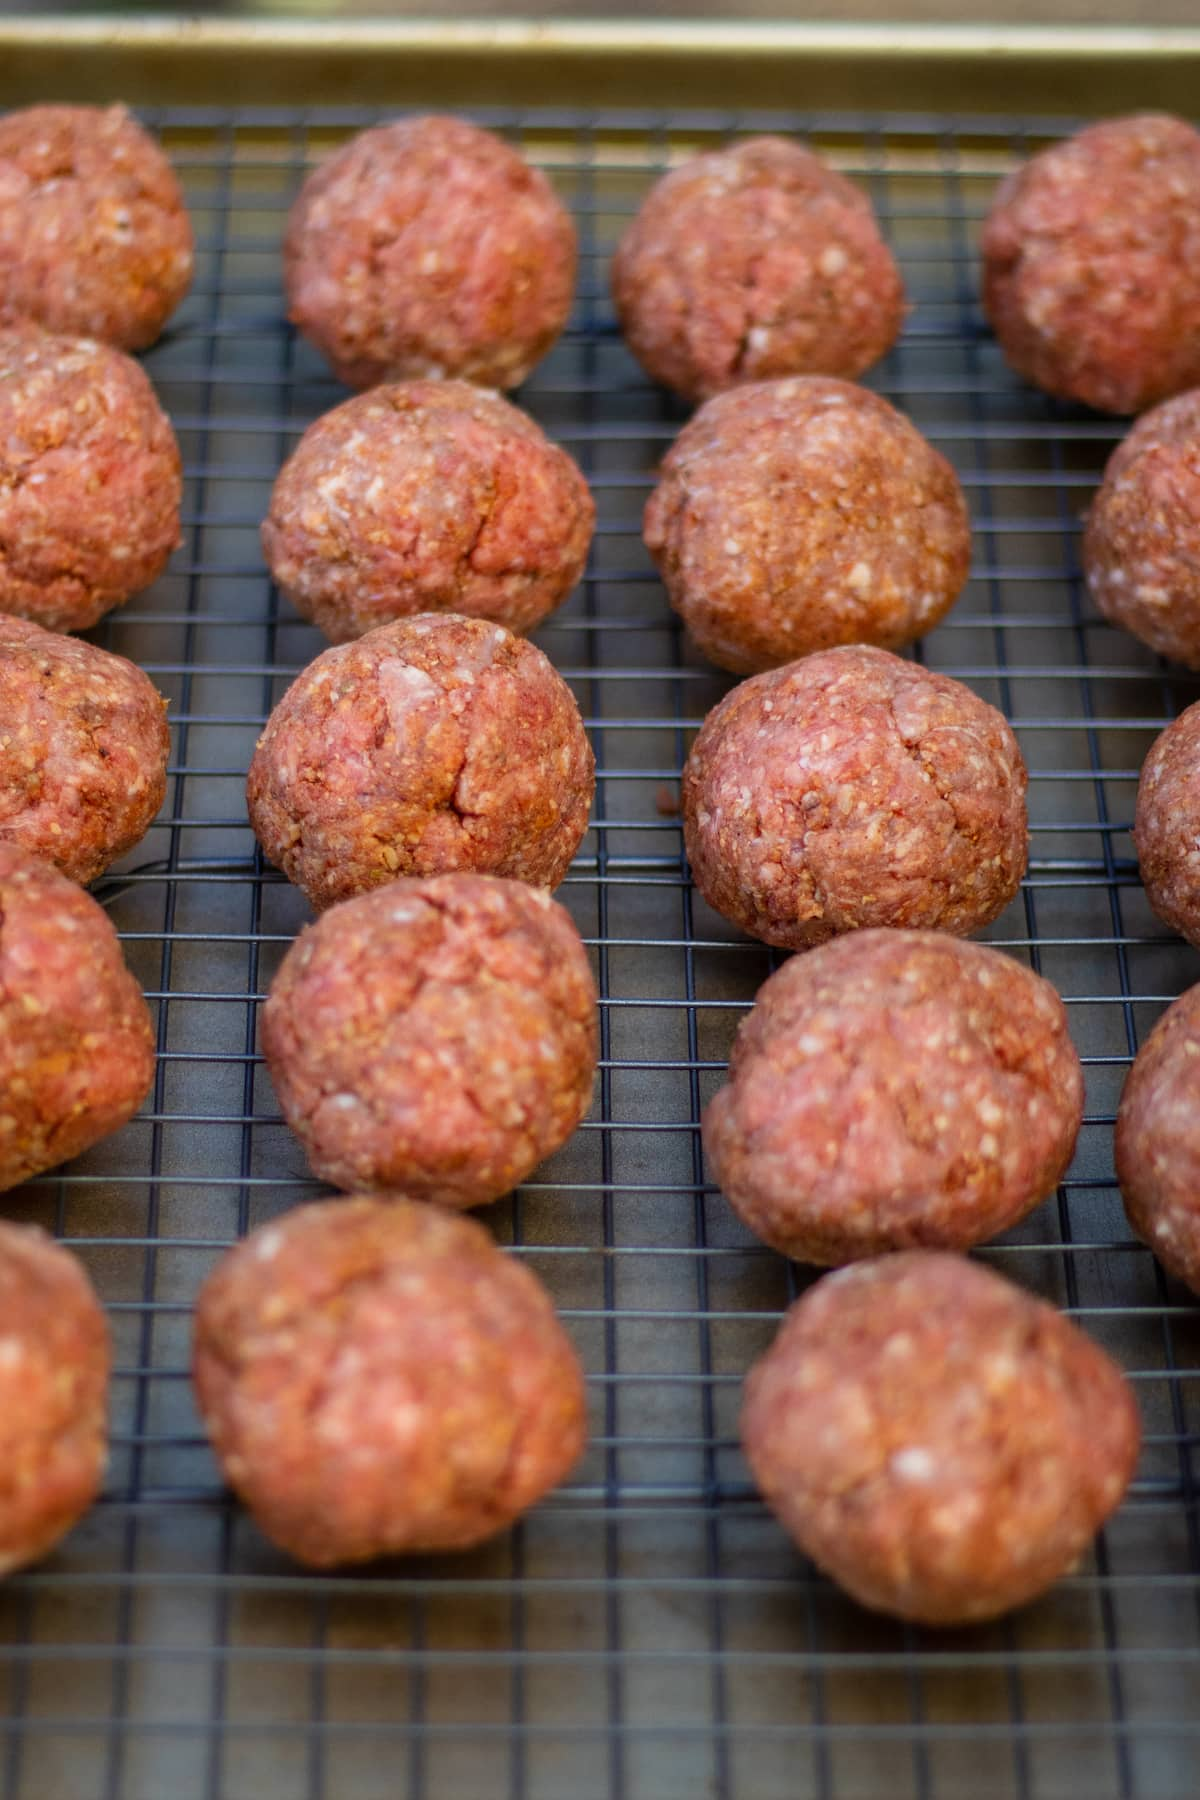 raw meatballs resting on a wire rack